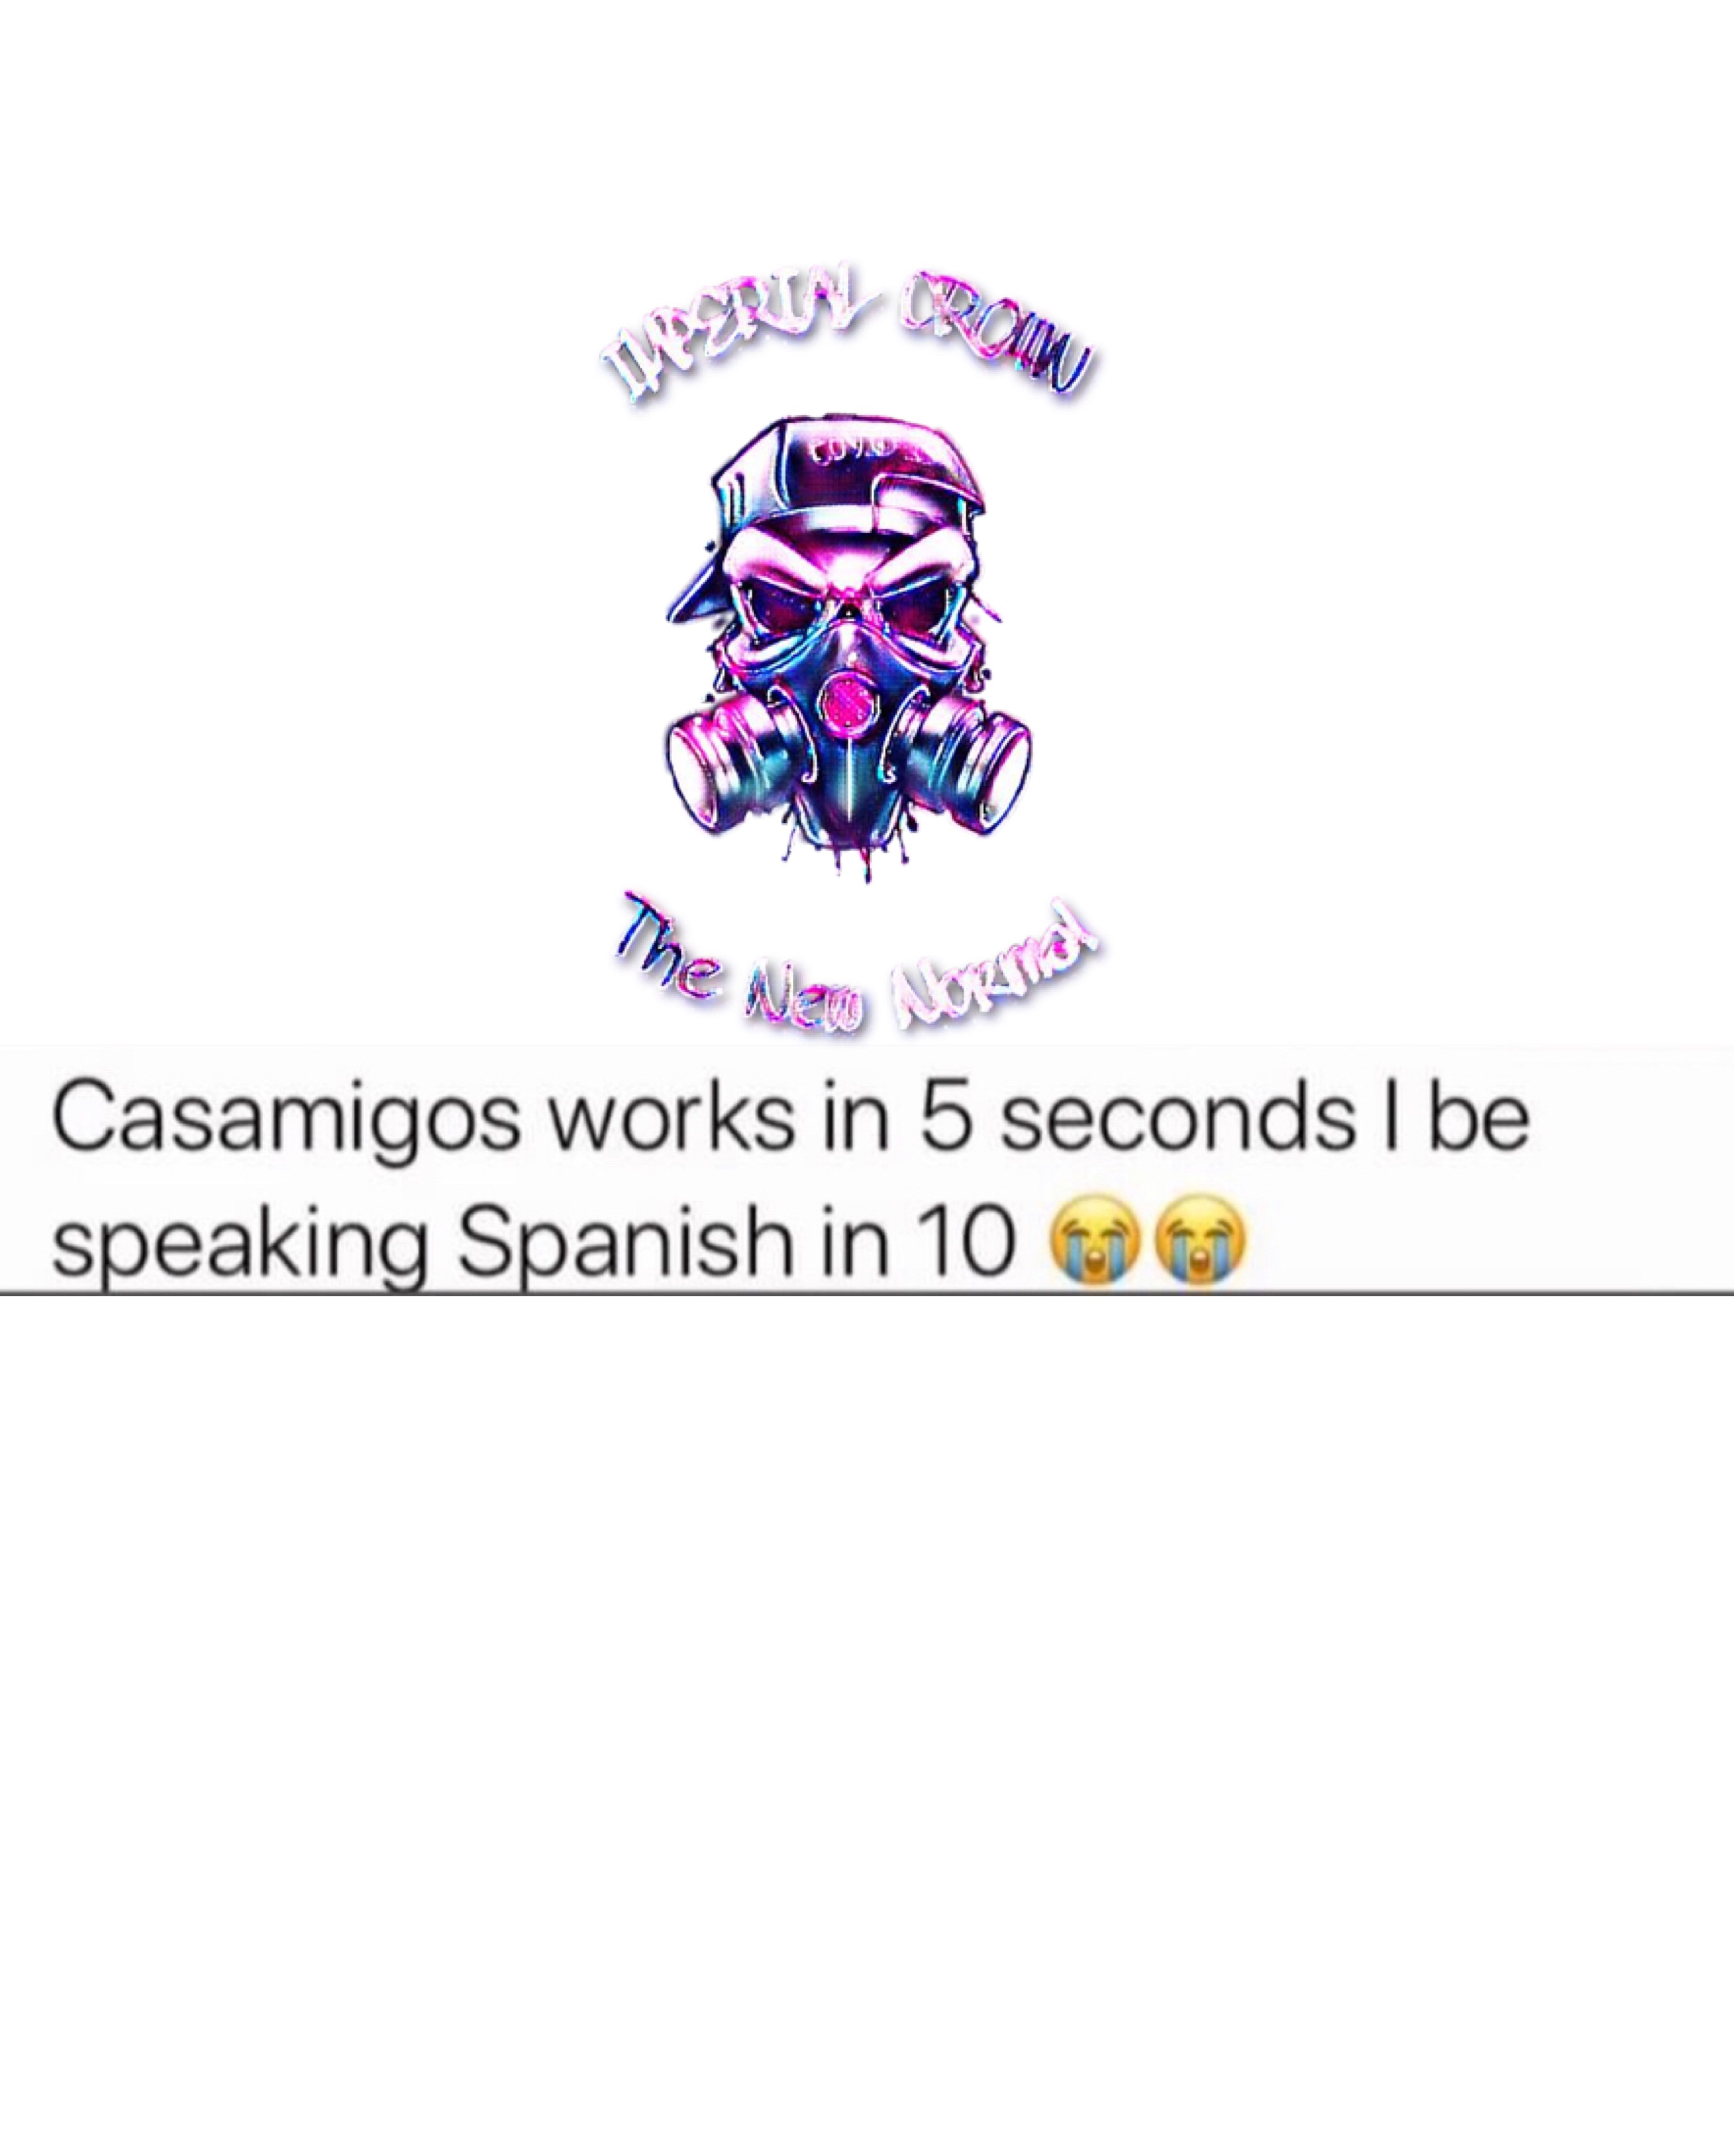 casamigos works in 5 seconds I be speaking Spanish in 10